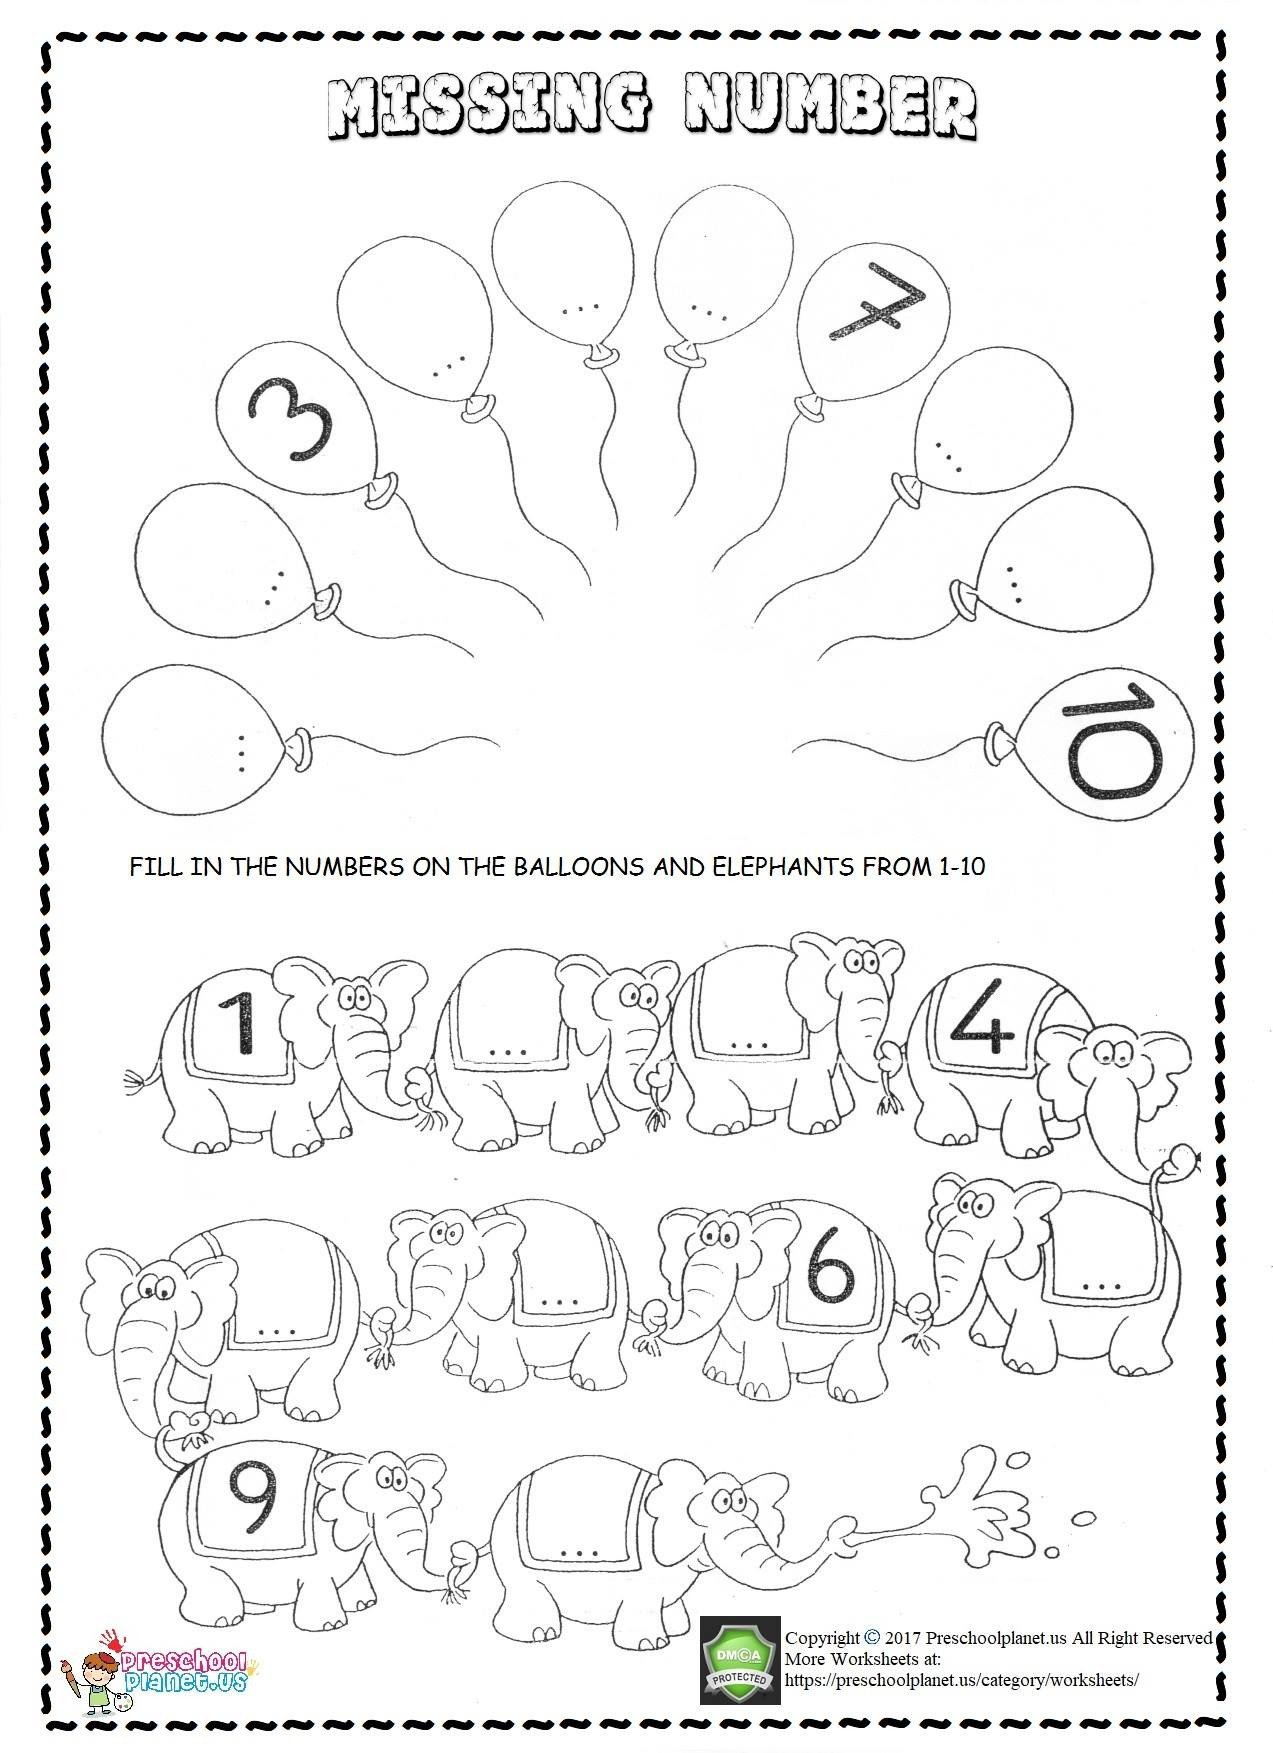 Missing Number Worksheets 1 10 Missing Number Worksheets for Kids – Preschoolplanet